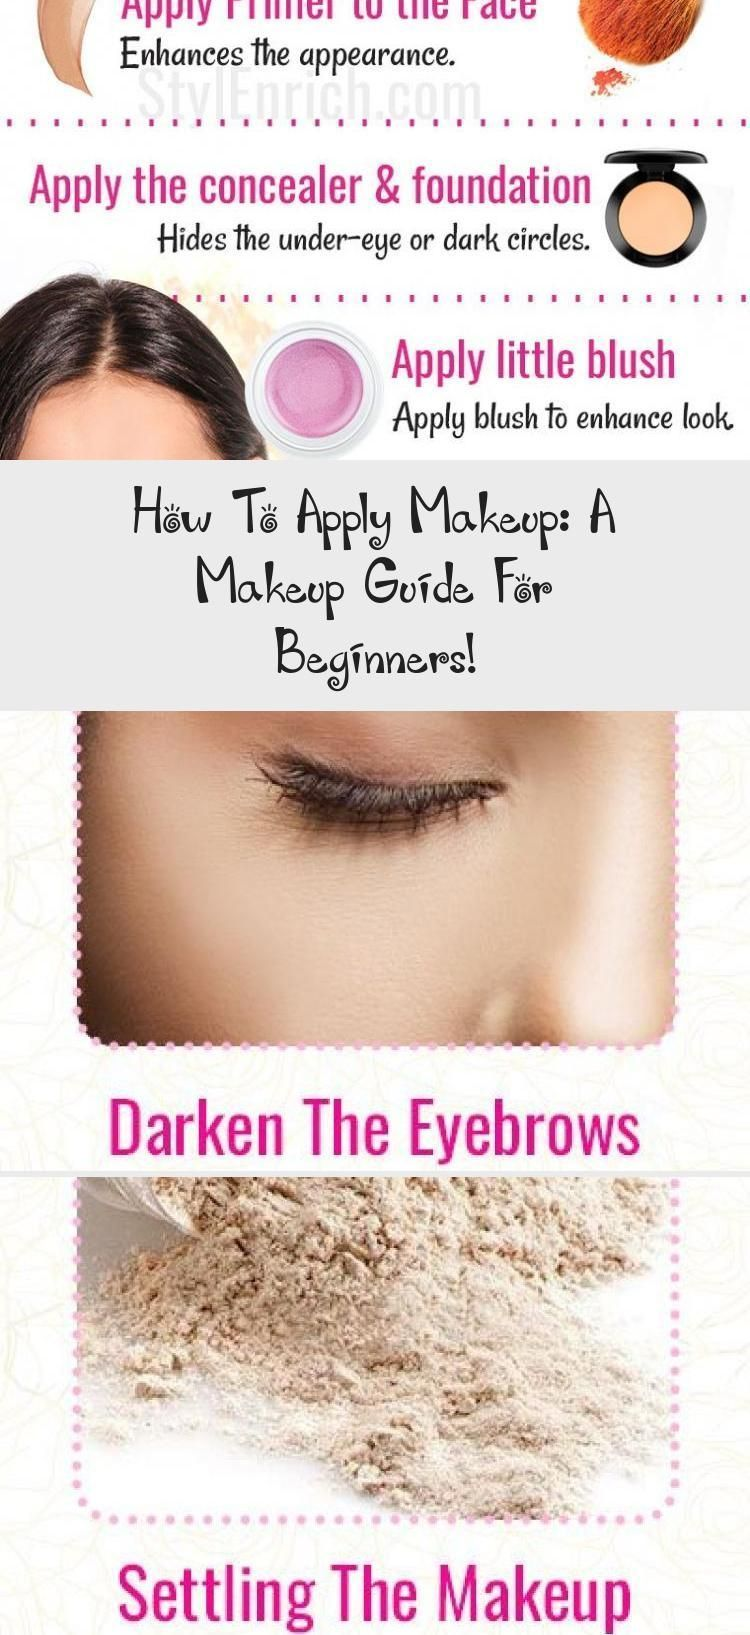 How To Apply Makeup A Makeup Guide For Beginners Makeup Howtoapplymakeup Yellow Blog App How To Apply Makeup Face Makeup Guide Makeup For Beginners